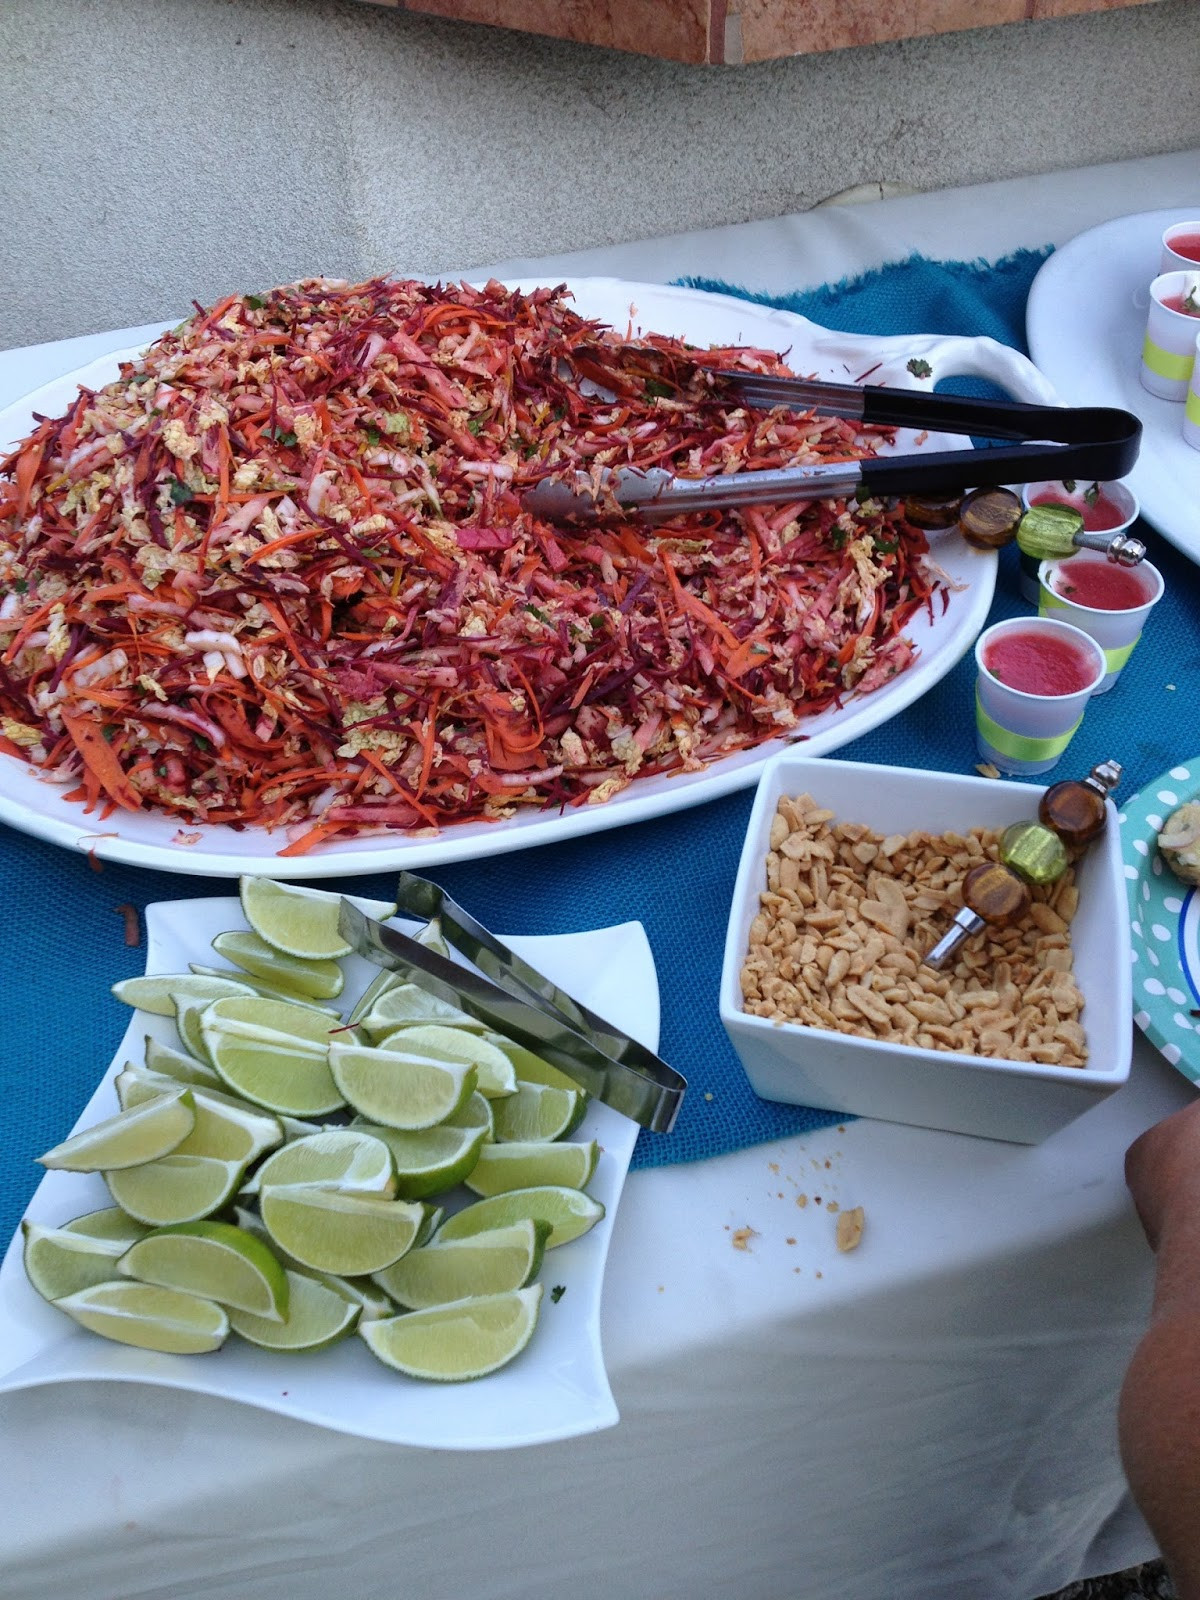 Summer Food Party Ideas  Coconut Love Clean And Light Summer Party Food For Mom s